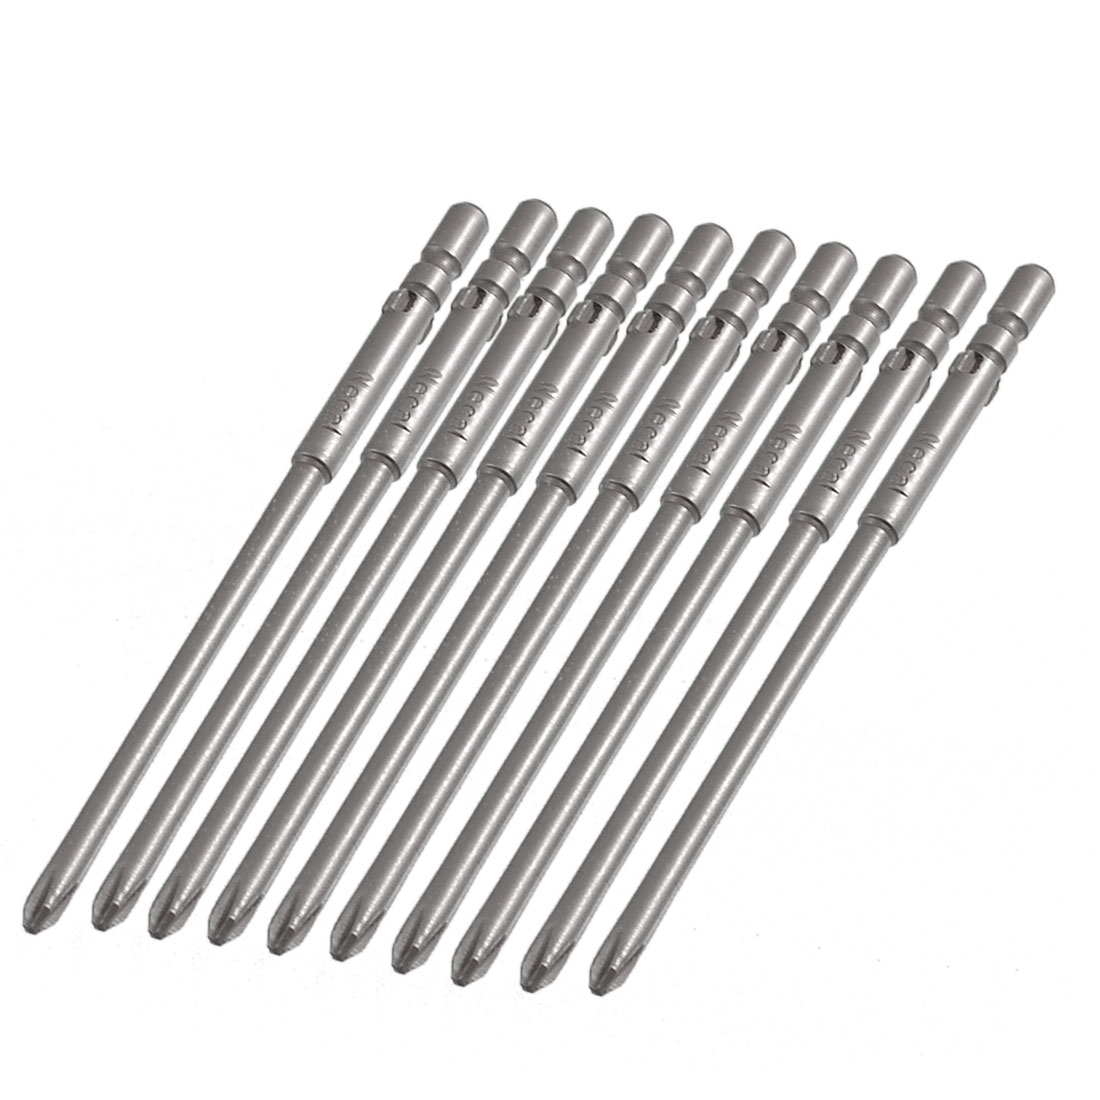 10 Pcs 4mm Shank 80mm Length 3mm Phillips PH1 Magnetic Screwdriver Bits